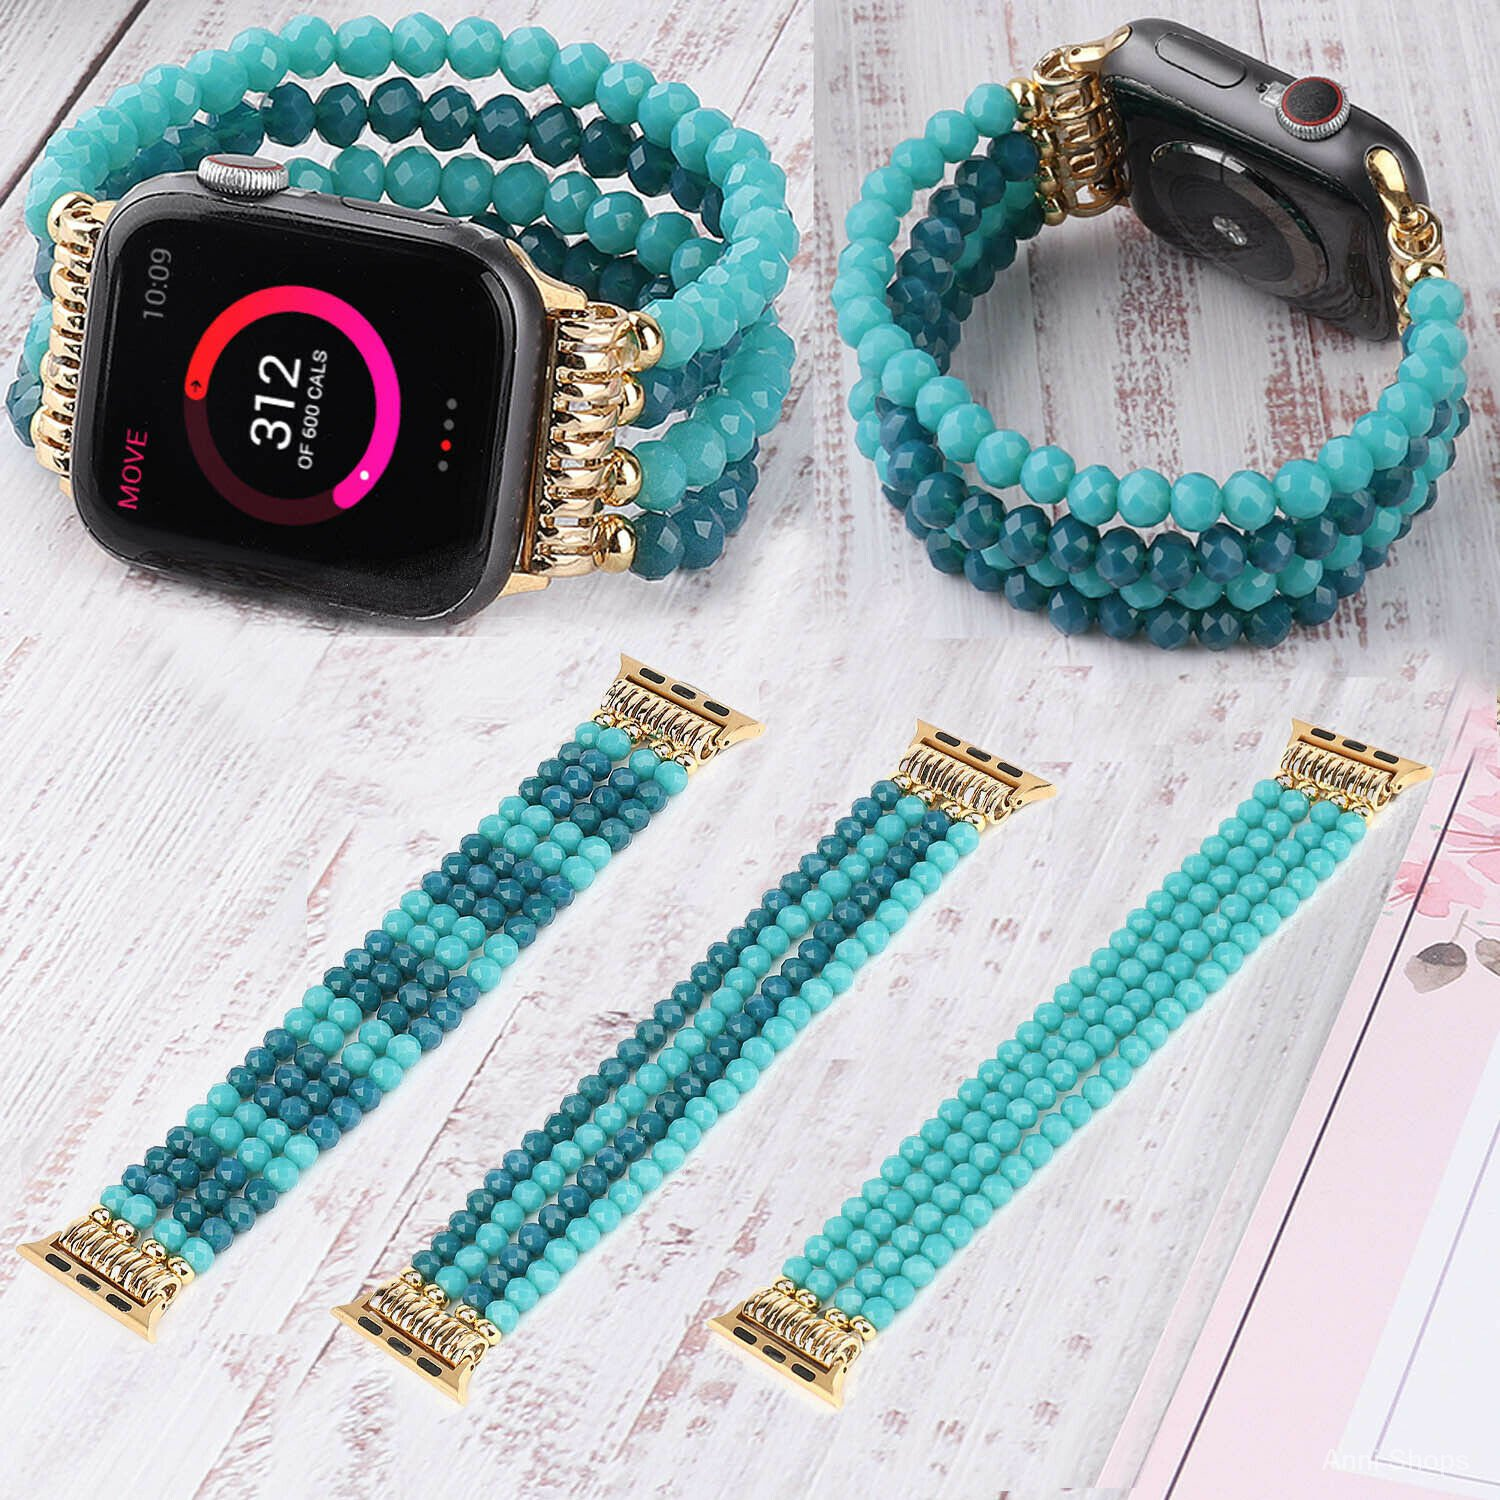 Blue Turquoise Beads Bangle Strap For Apple Watch Band 40mm 42mm 38mm 44mm Elastic Bracelet For iWatch Series 1 2 3 4 5